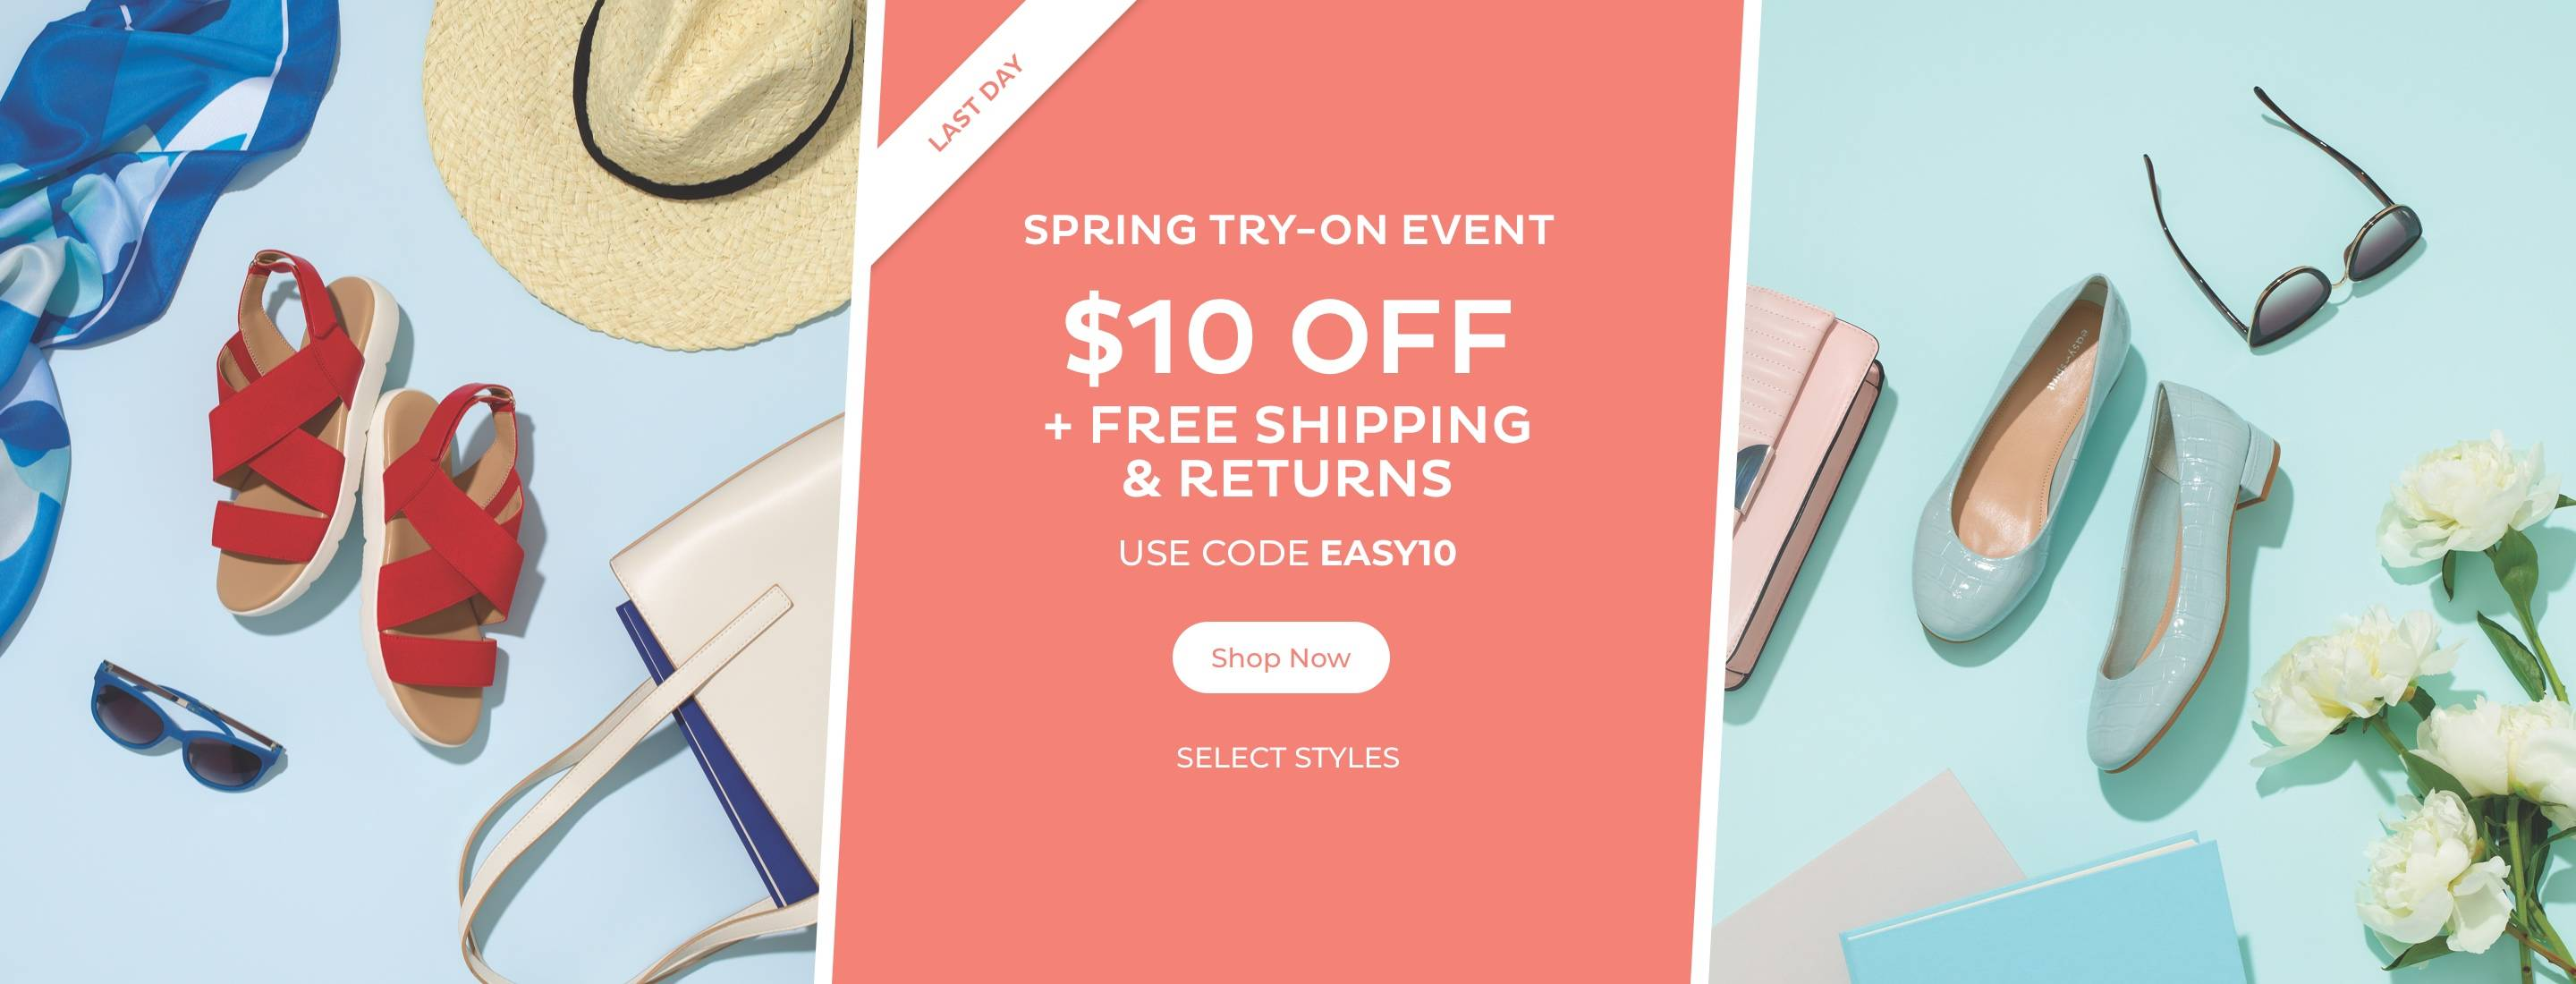 Spring Try-On Event